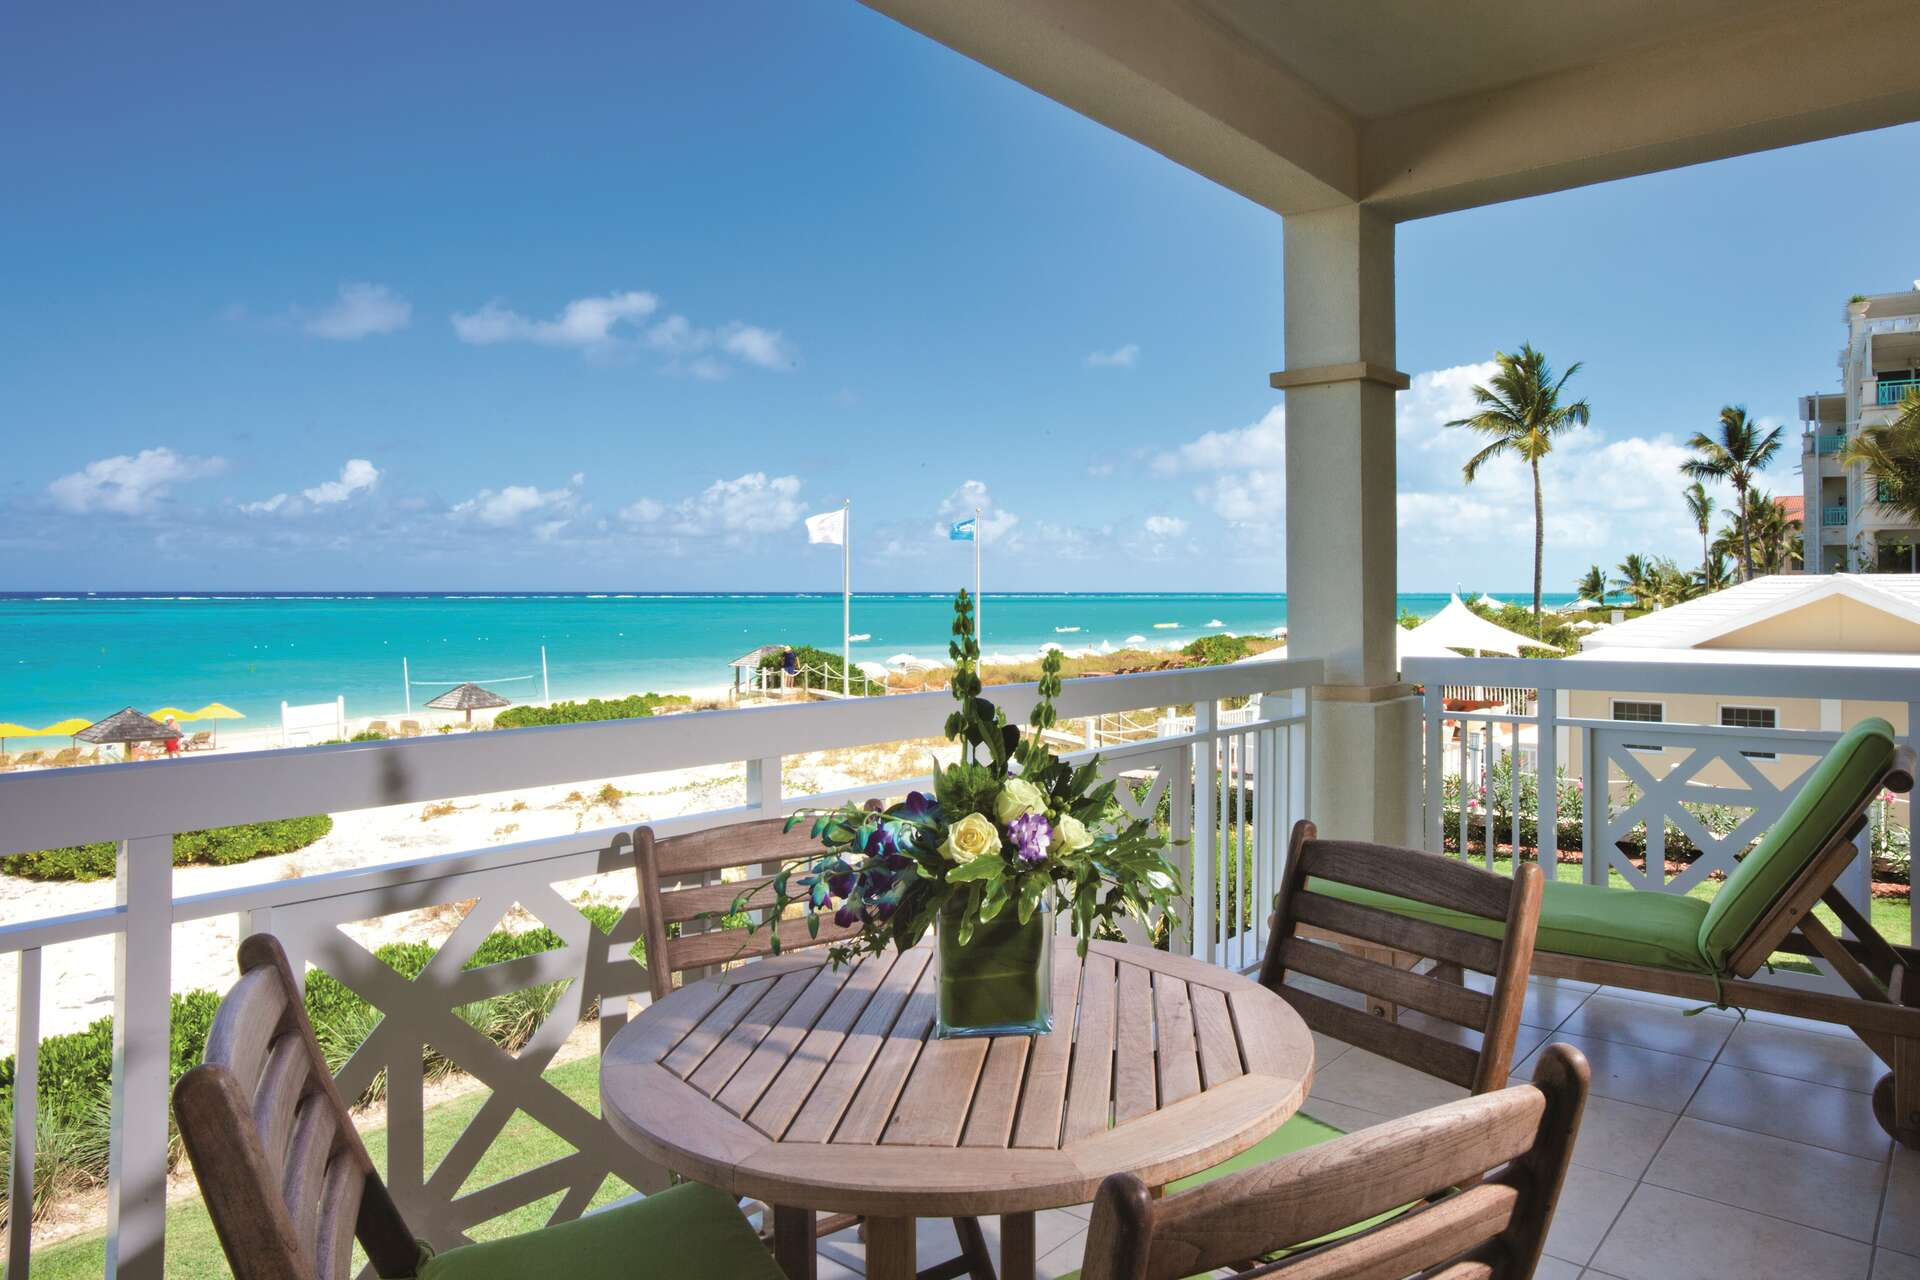 Luxury villa rentals caribbean - Turks and caicos - Providenciales - Alexandra resort - Oceanfront Suite | 1 Bedroom - Image 1/10